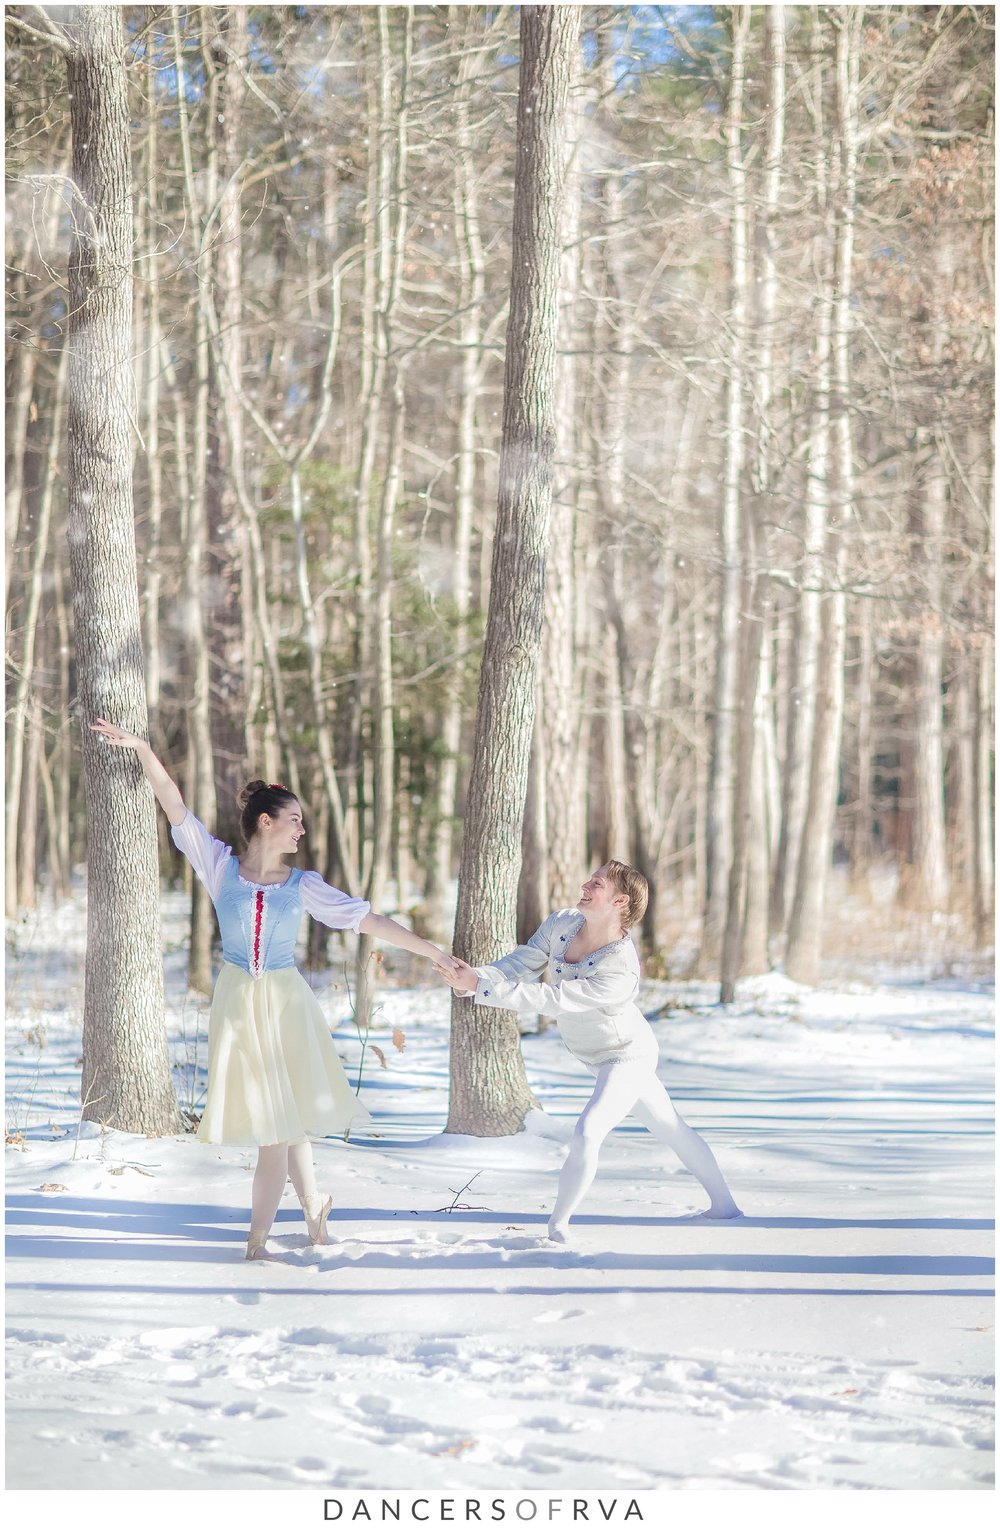 Richmond-Dance-Photography-Snow-White-Stanva-Modlin-Gianna-Grace-Photography_0001.jpg